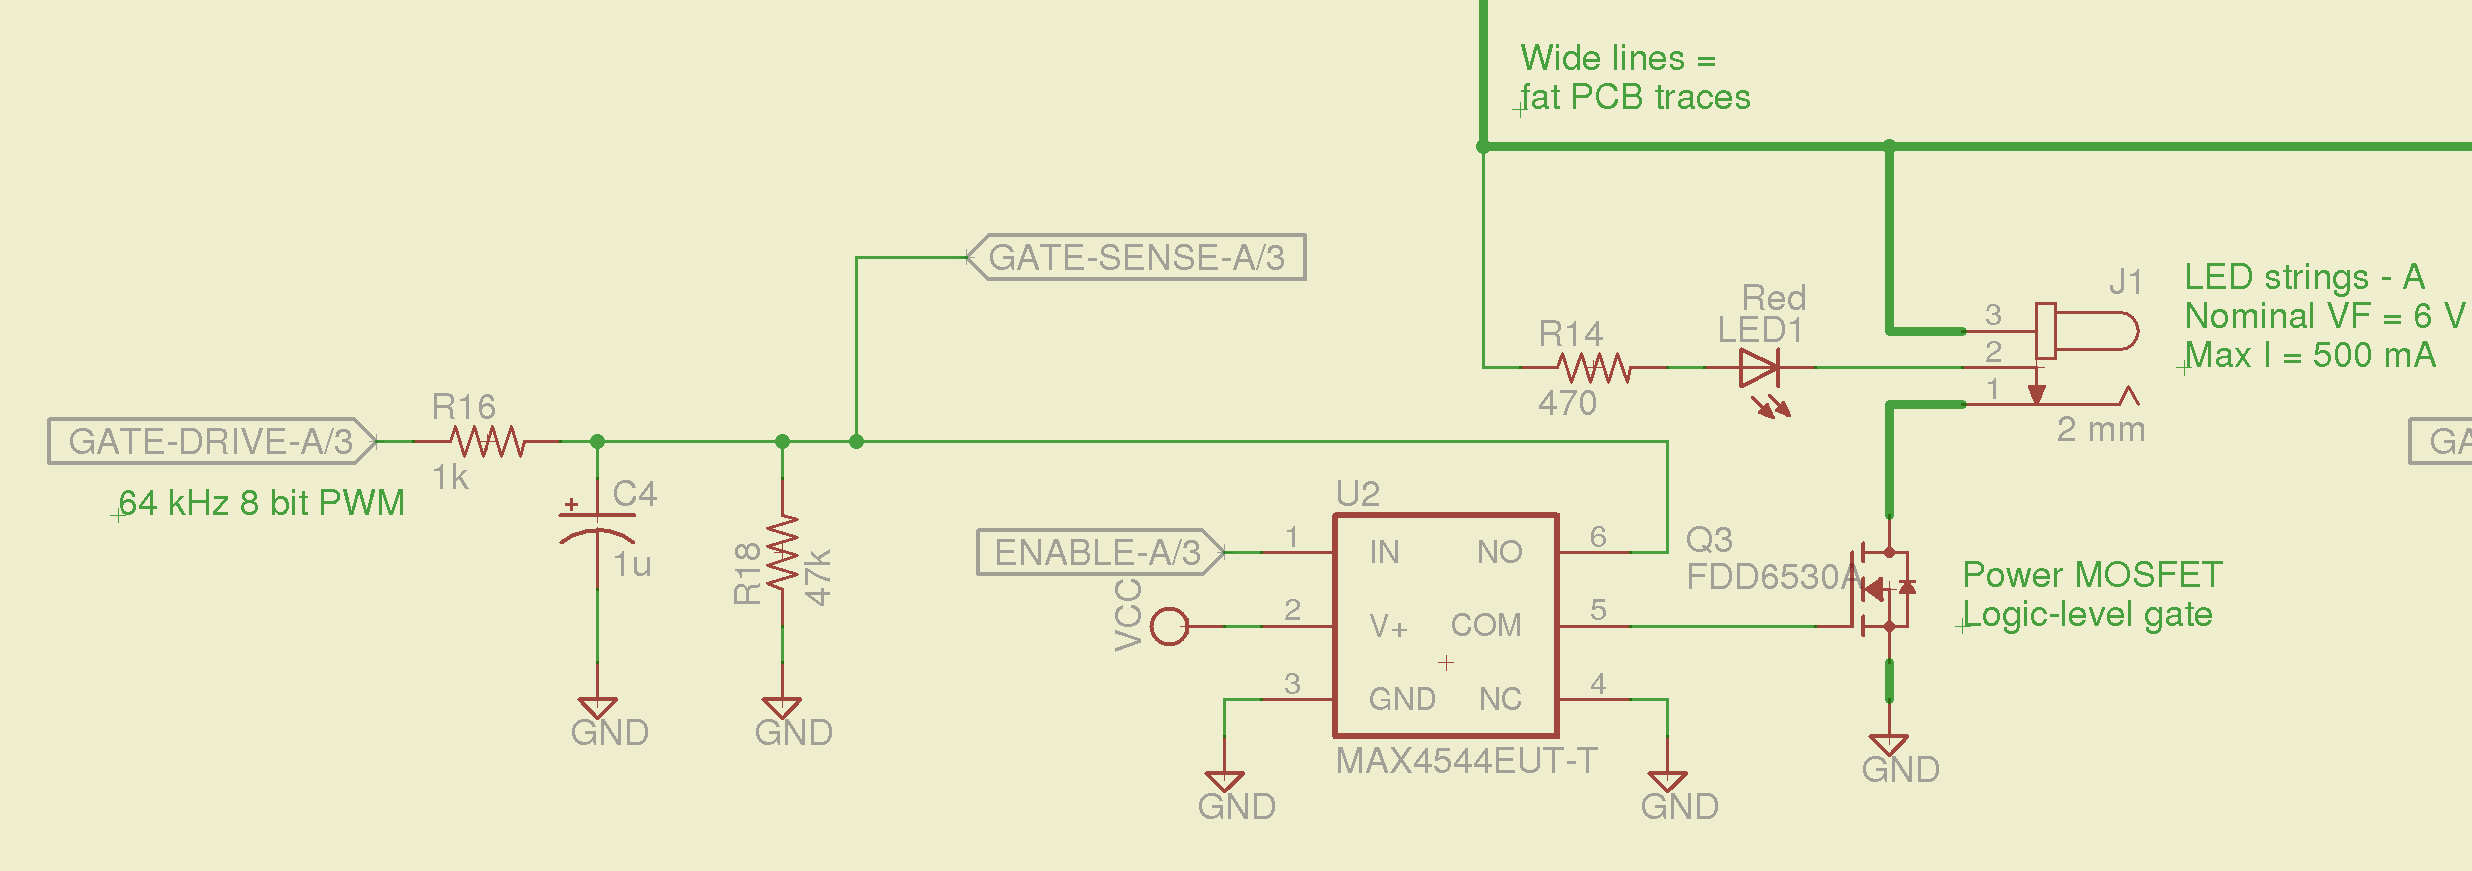 Hall Effect Switch Schematic Diagrams Sensor Wiring Diagram Http Wwwclearriceedu Elec201 Led Current Control Switched Mosfet Gates The Smell Transistor Circuit